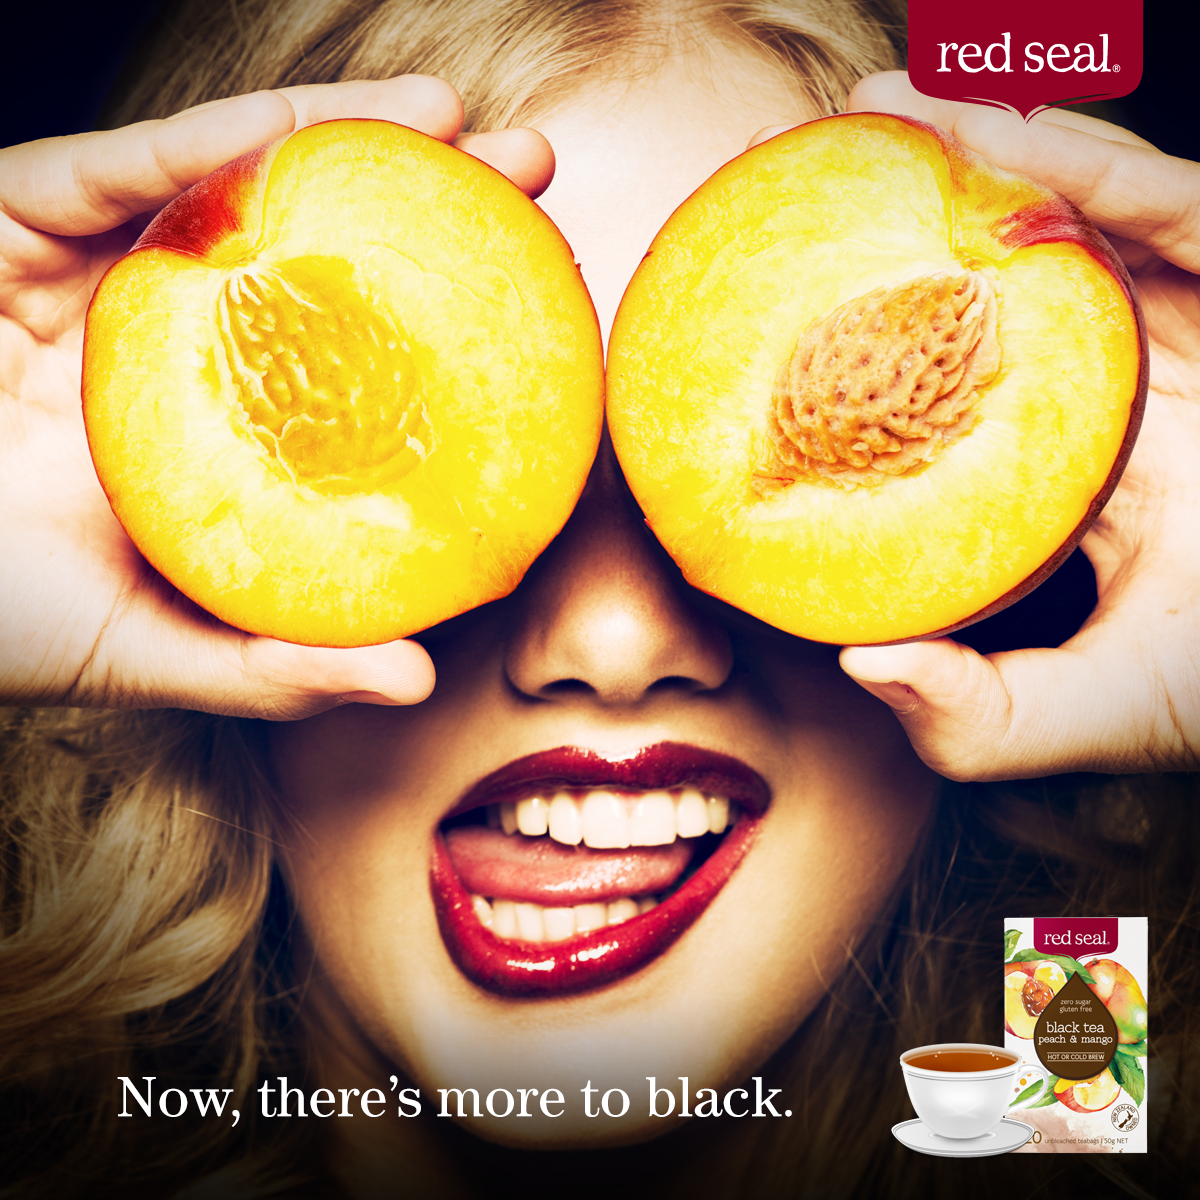 RED2746-Black-Tea-Social-Peach-&-Mango_v3_Facebook_Reveal